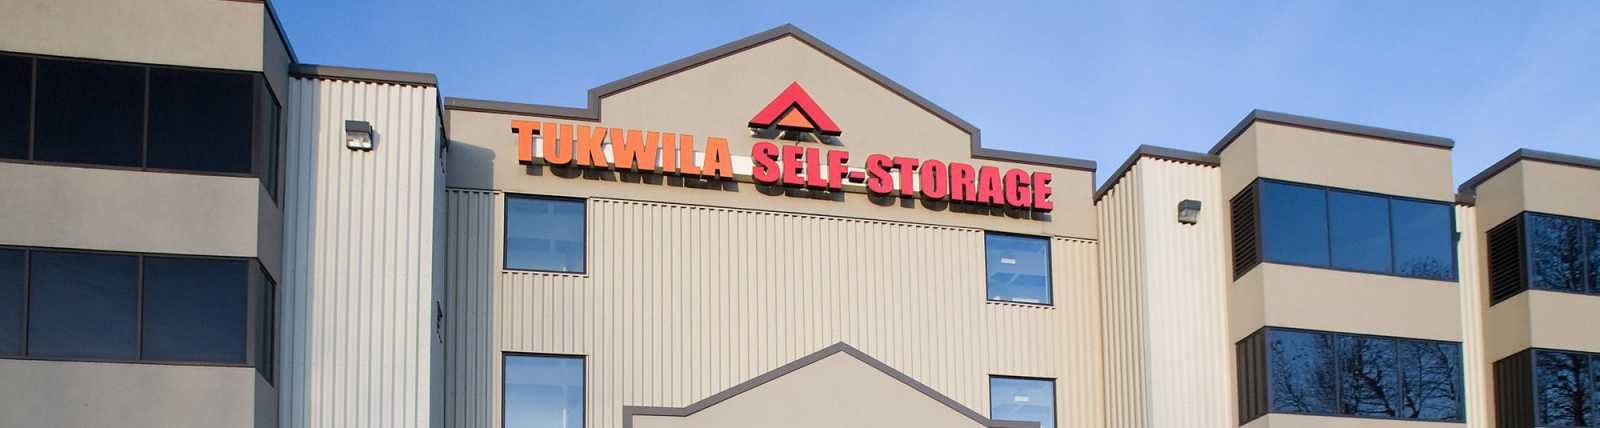 Tukwila Self Storage